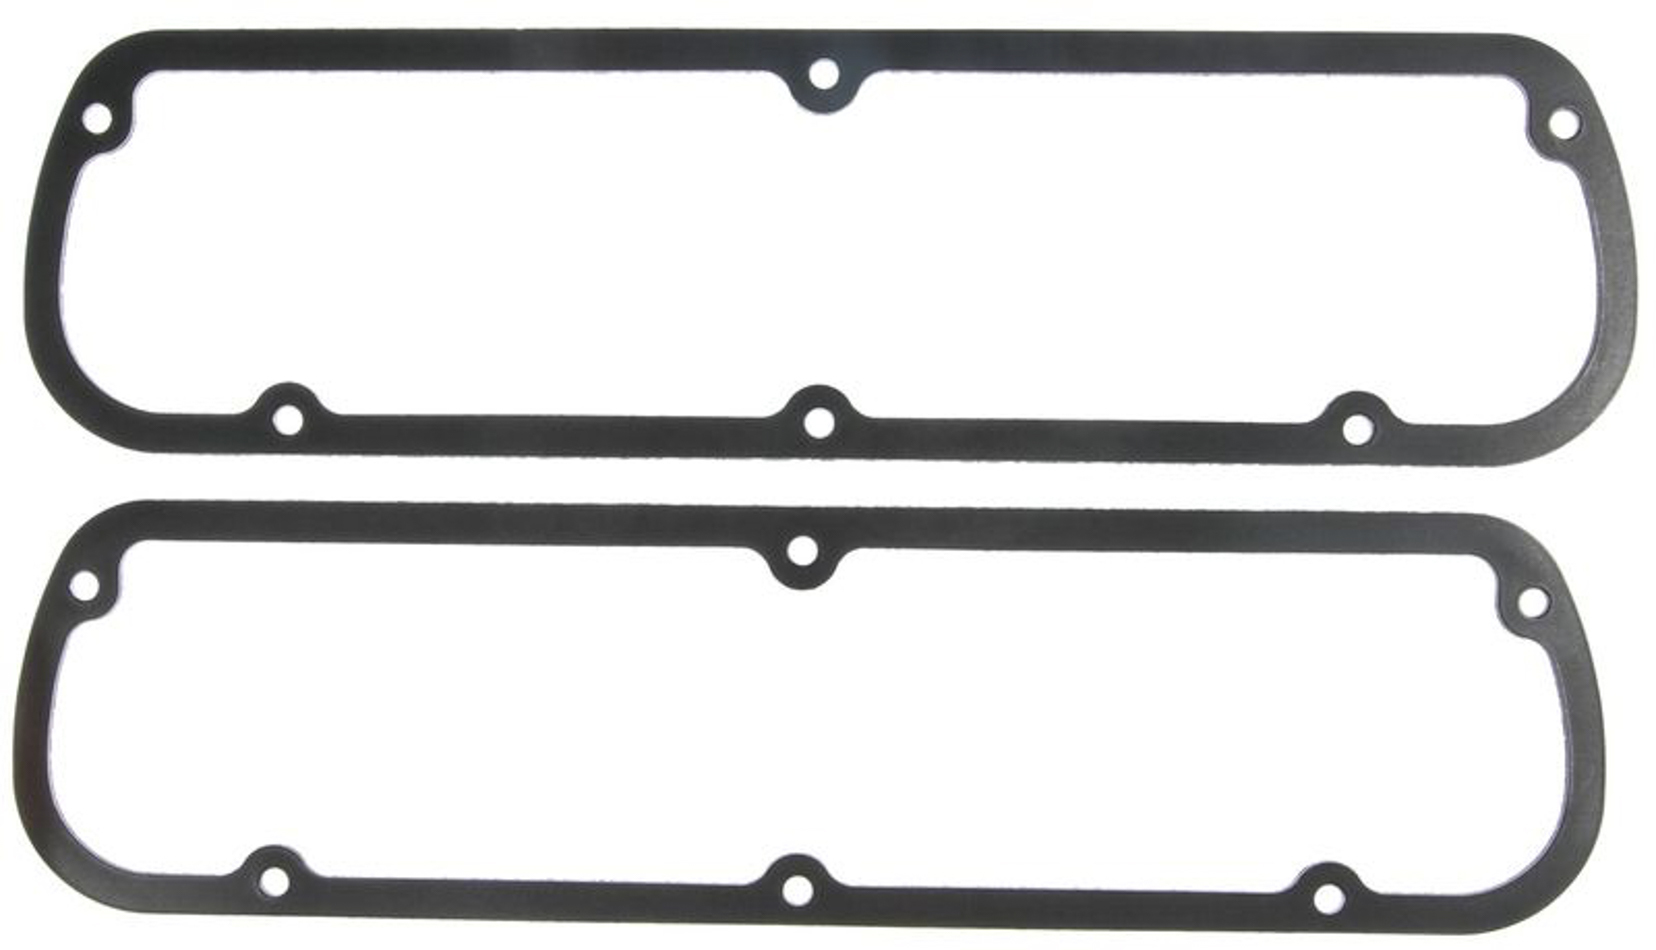 Michigan 77 VS50793 Valve Cover Gasket, 0.060 in Thick, Graphite, Small Block Ford, Pair